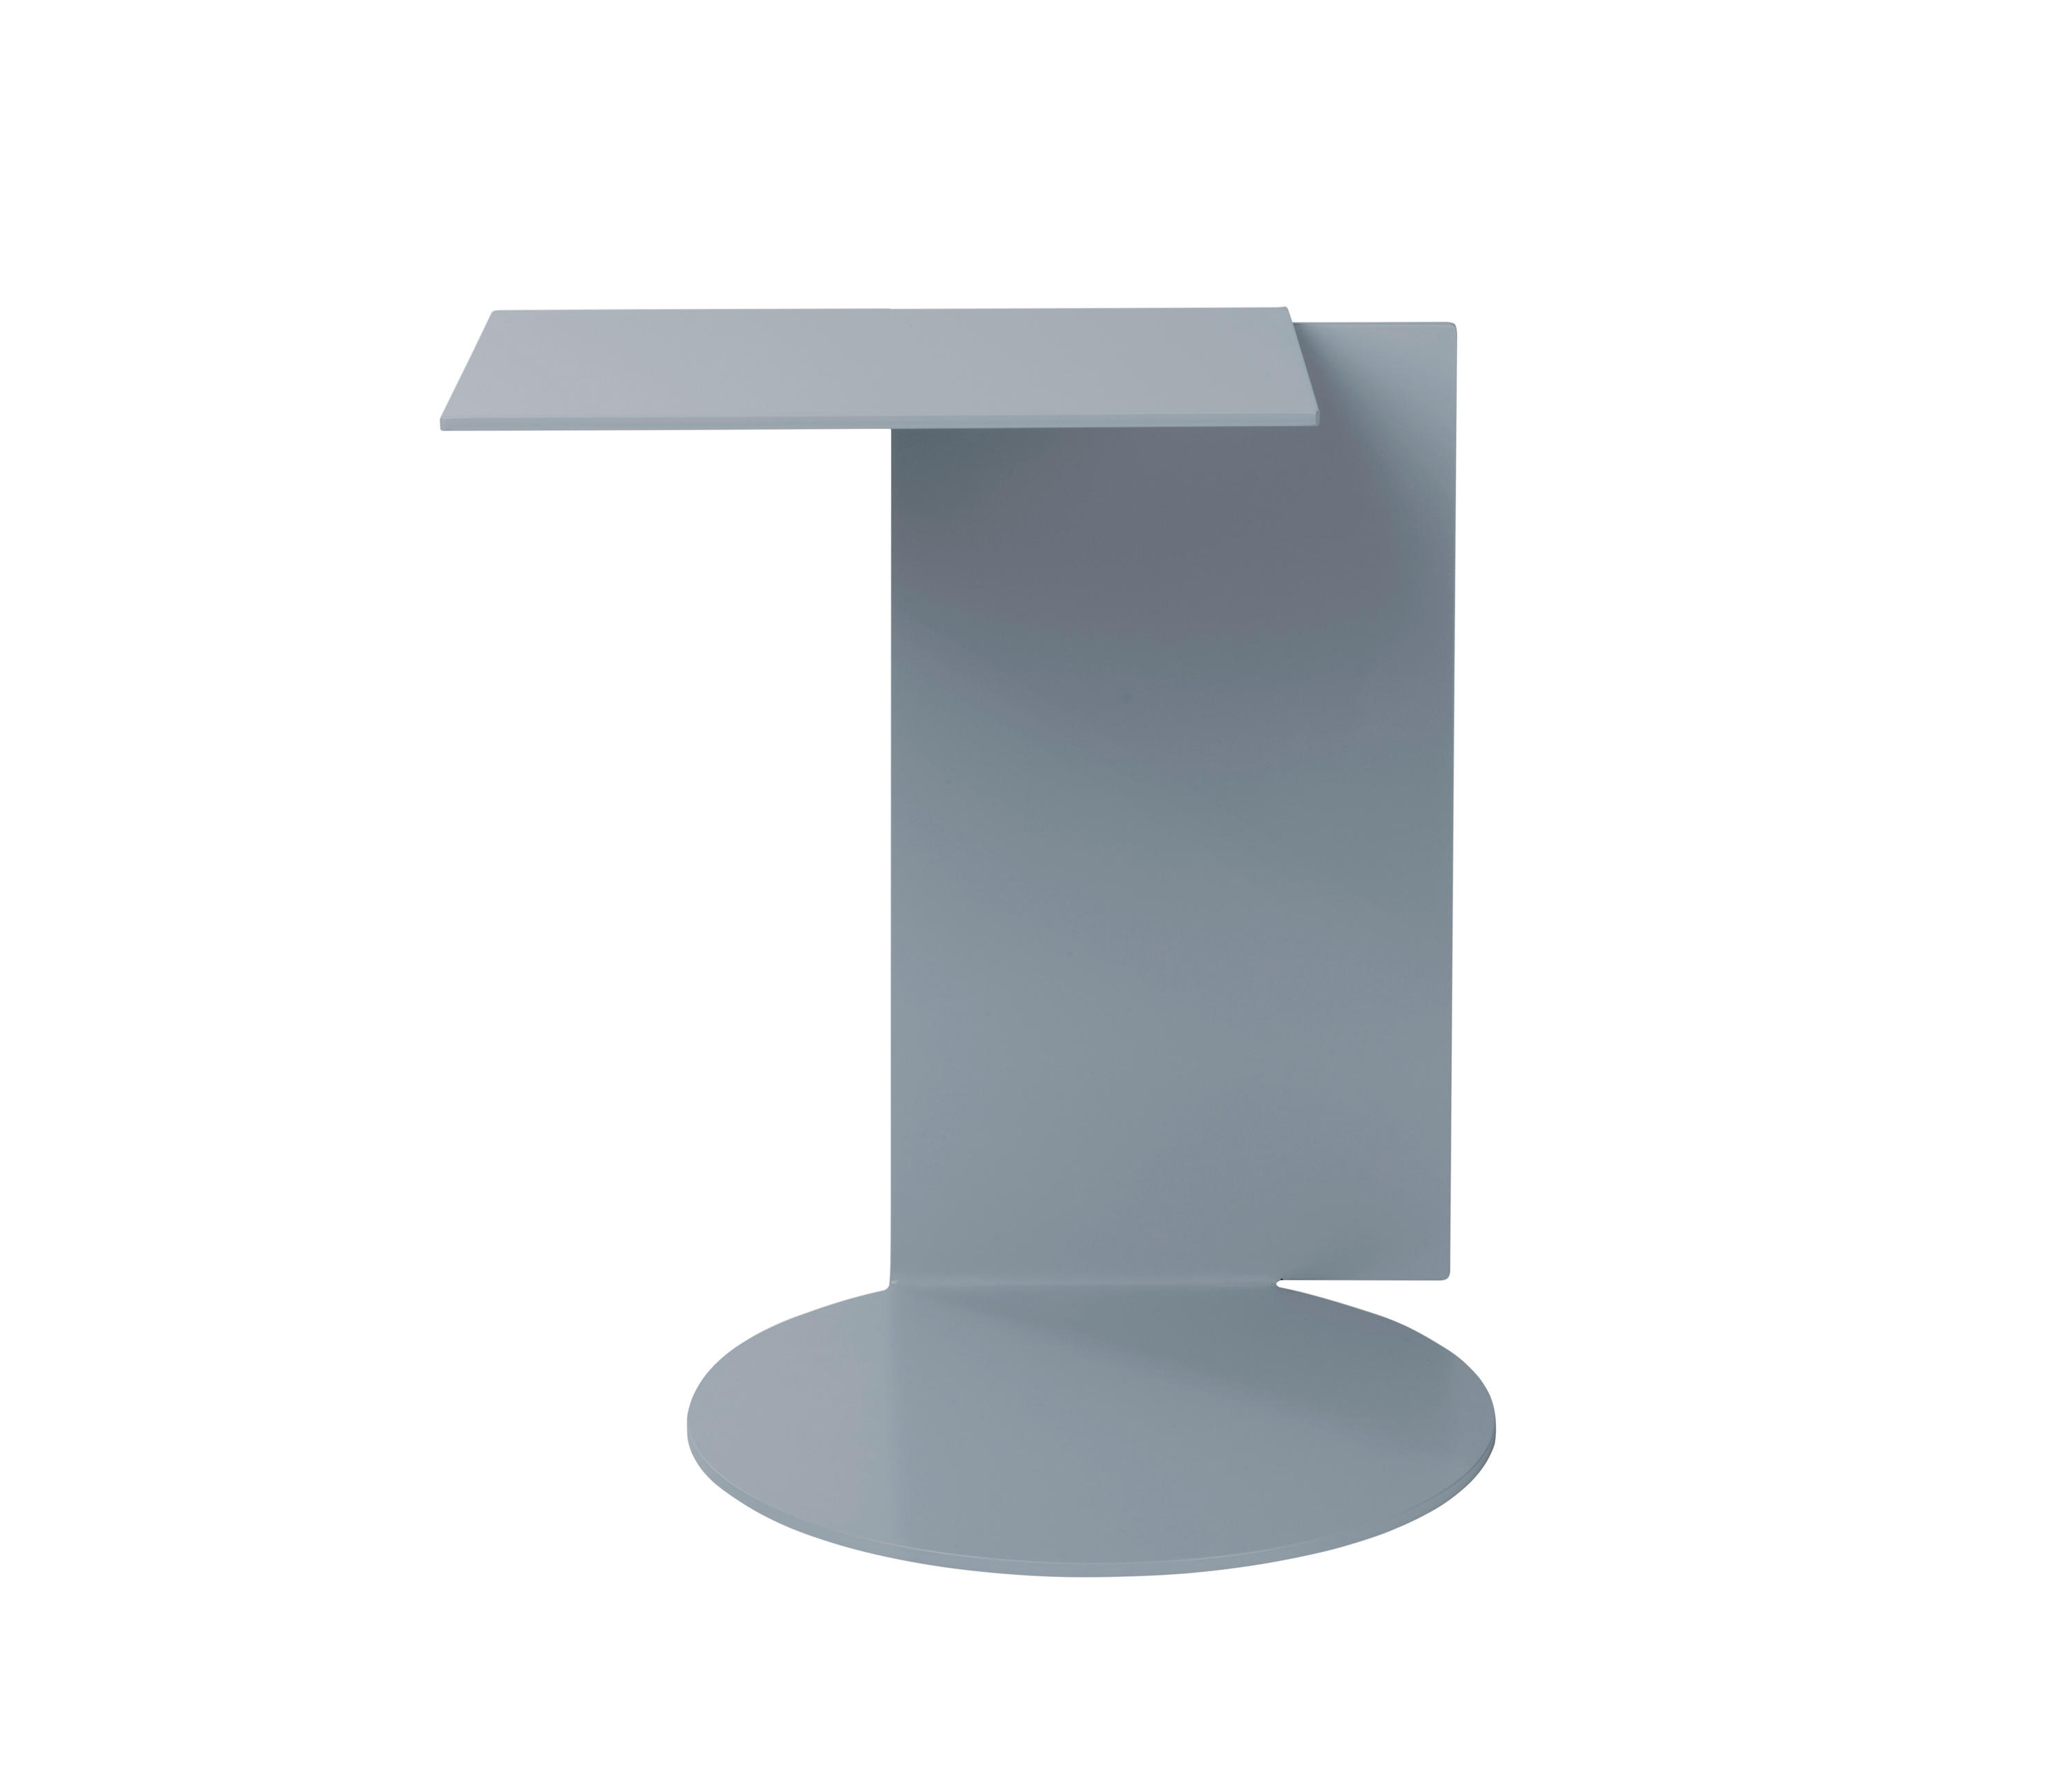 Plateau Side Tables From Echtstahl Architonic # Photo Table Tele